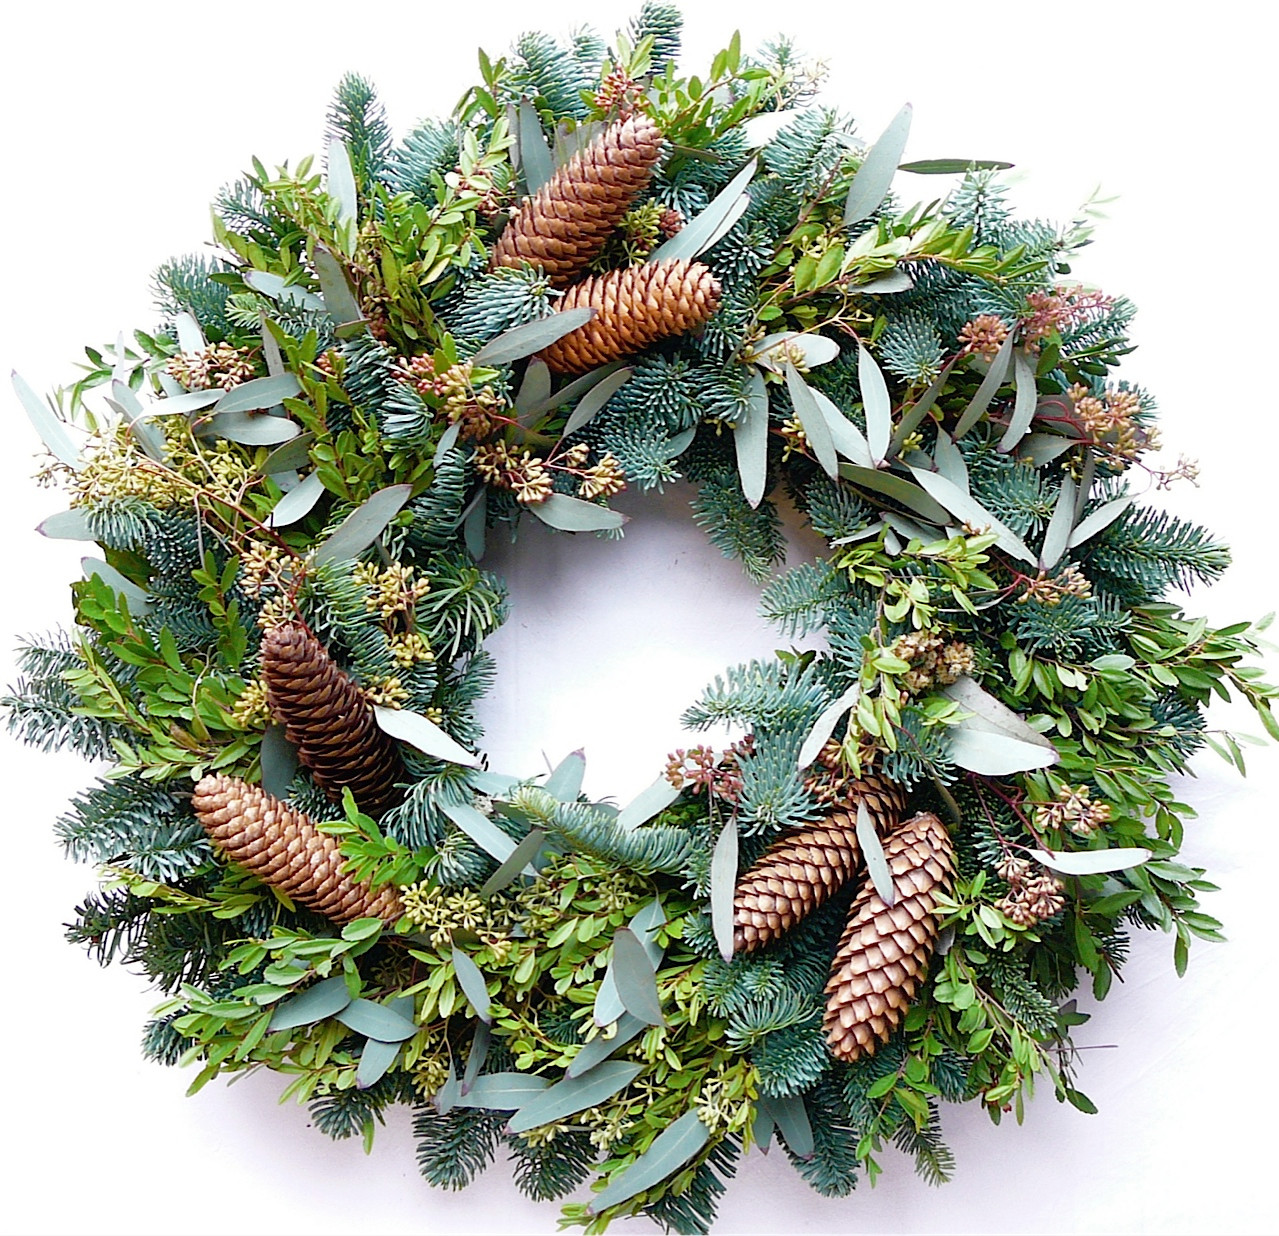 Annscroft Fresh Evergreen Christmas Wreath 22 In The Wreath Depot